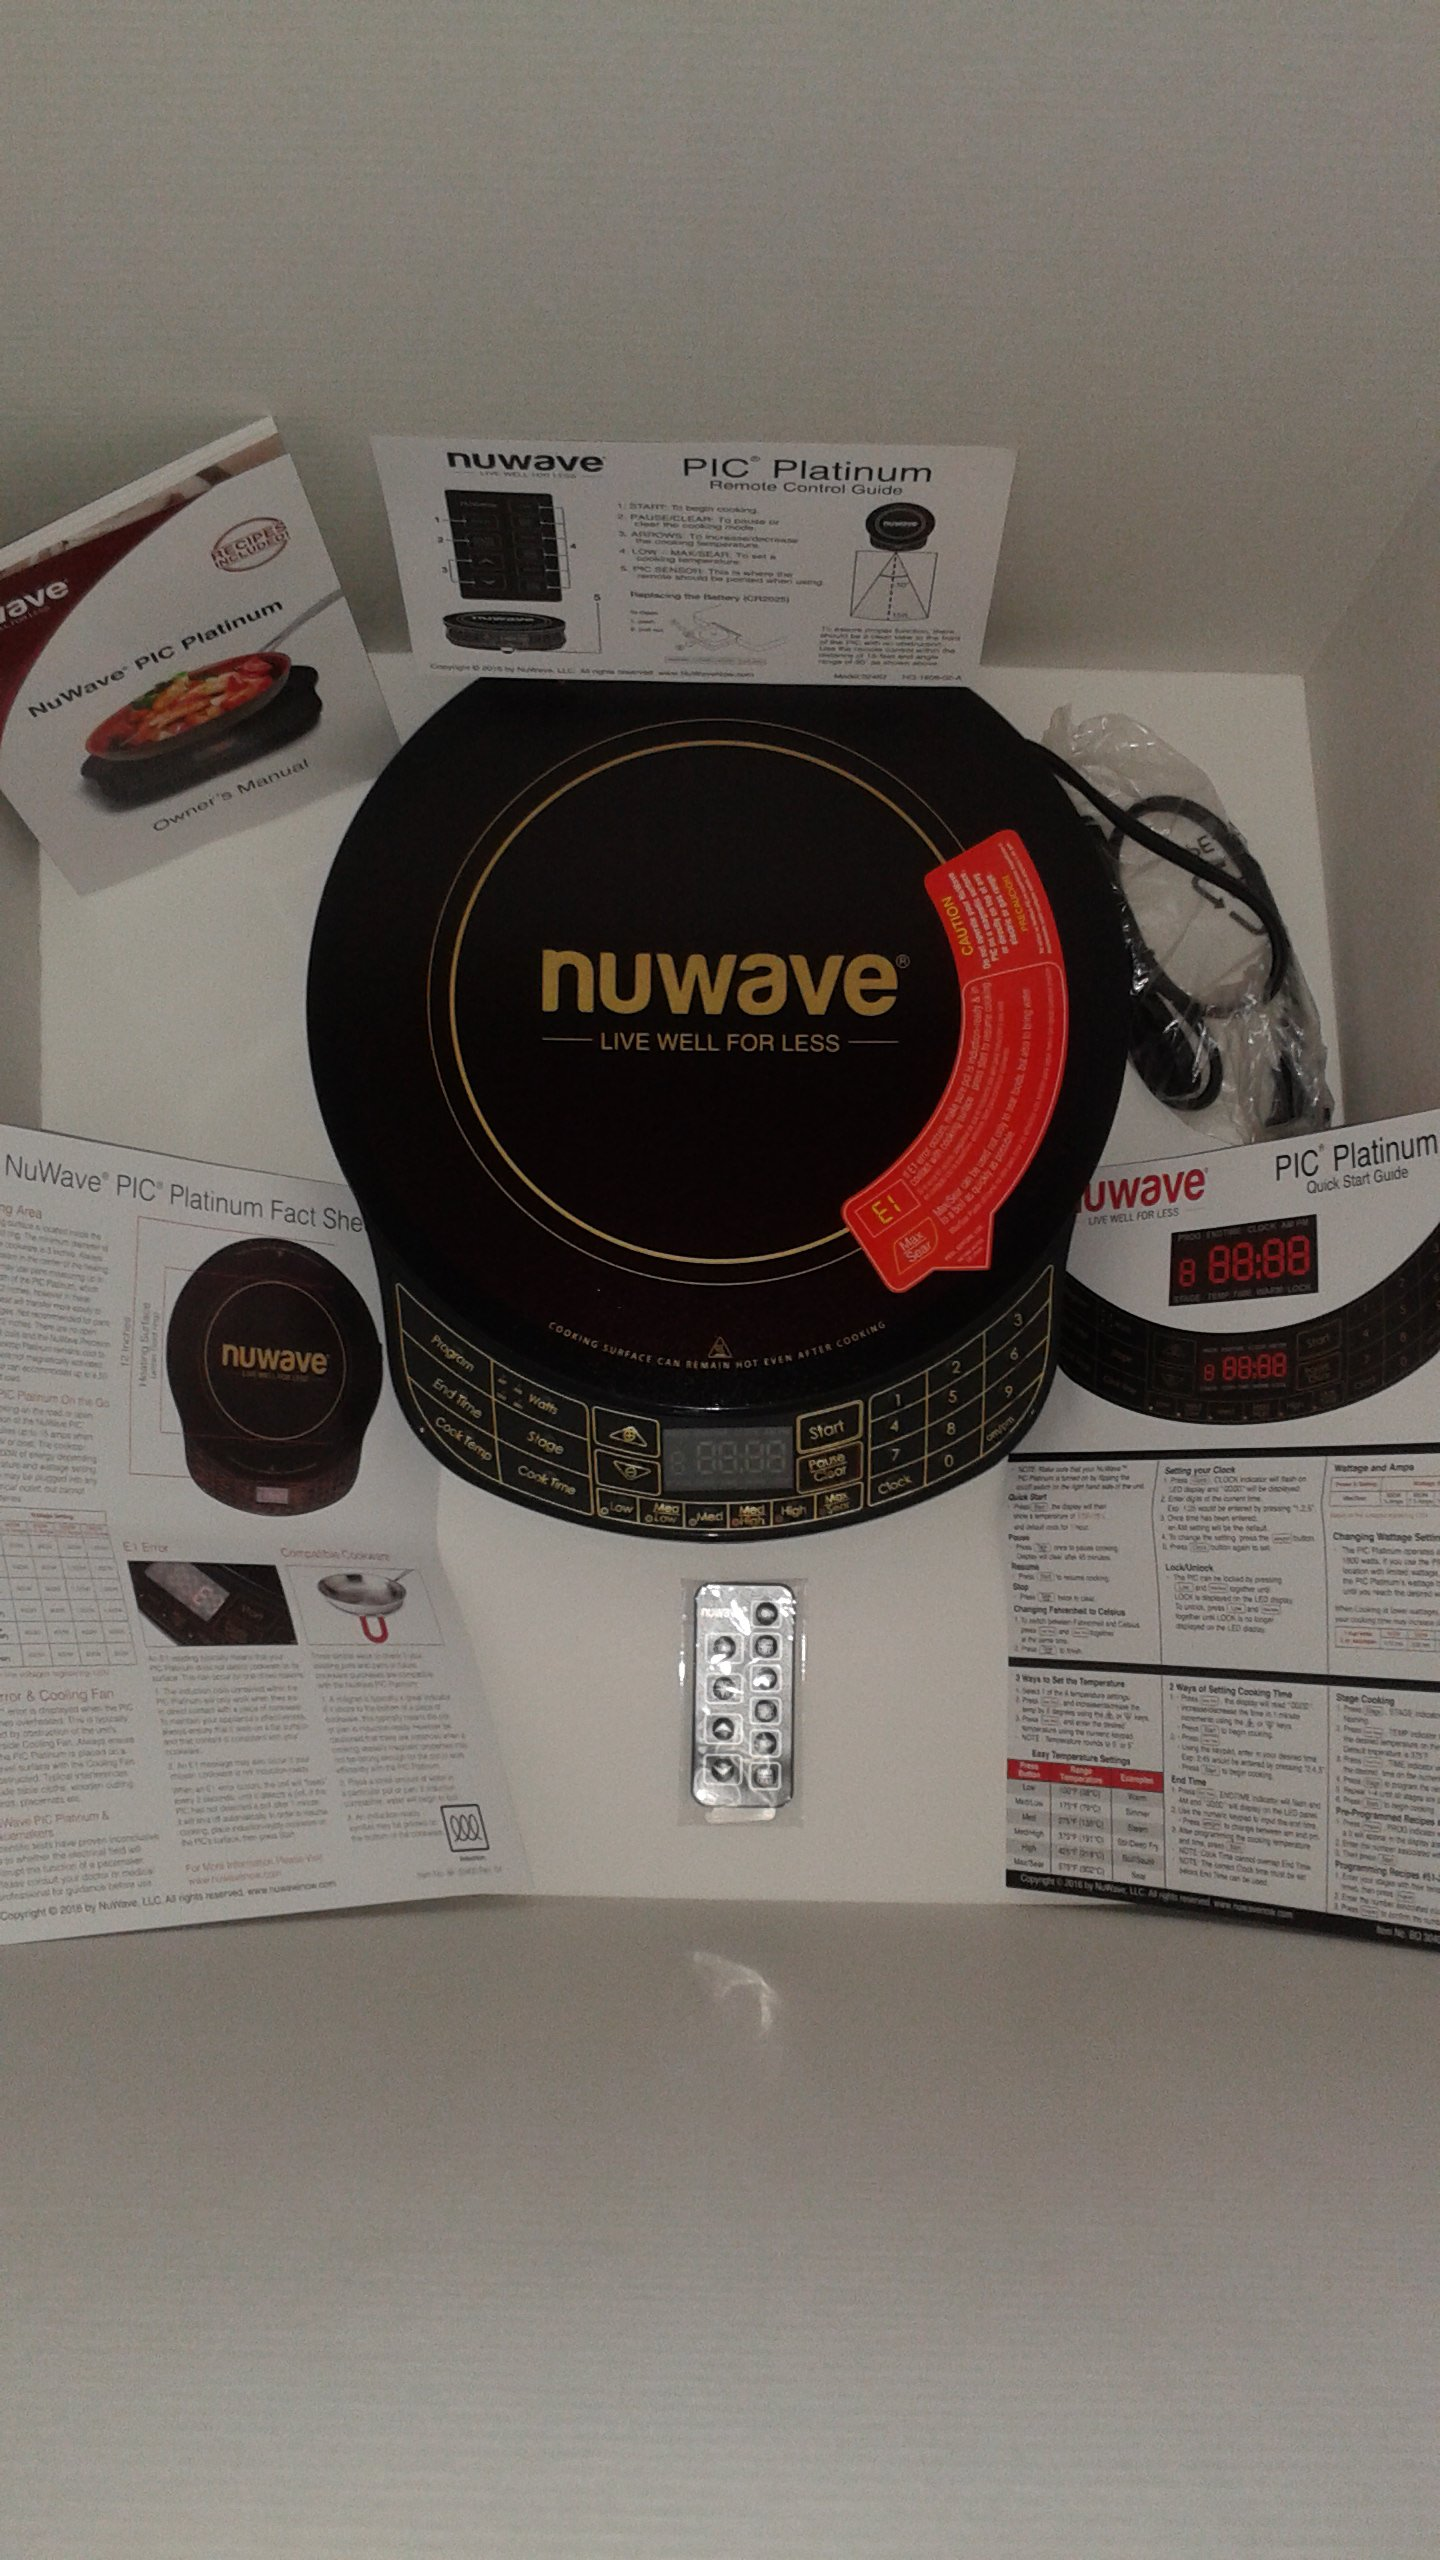 NuWave Platinum 30401 Precision Induction Cooktop, Black with Remote and Advanced Features for 2017 by NuWave (Image #1)